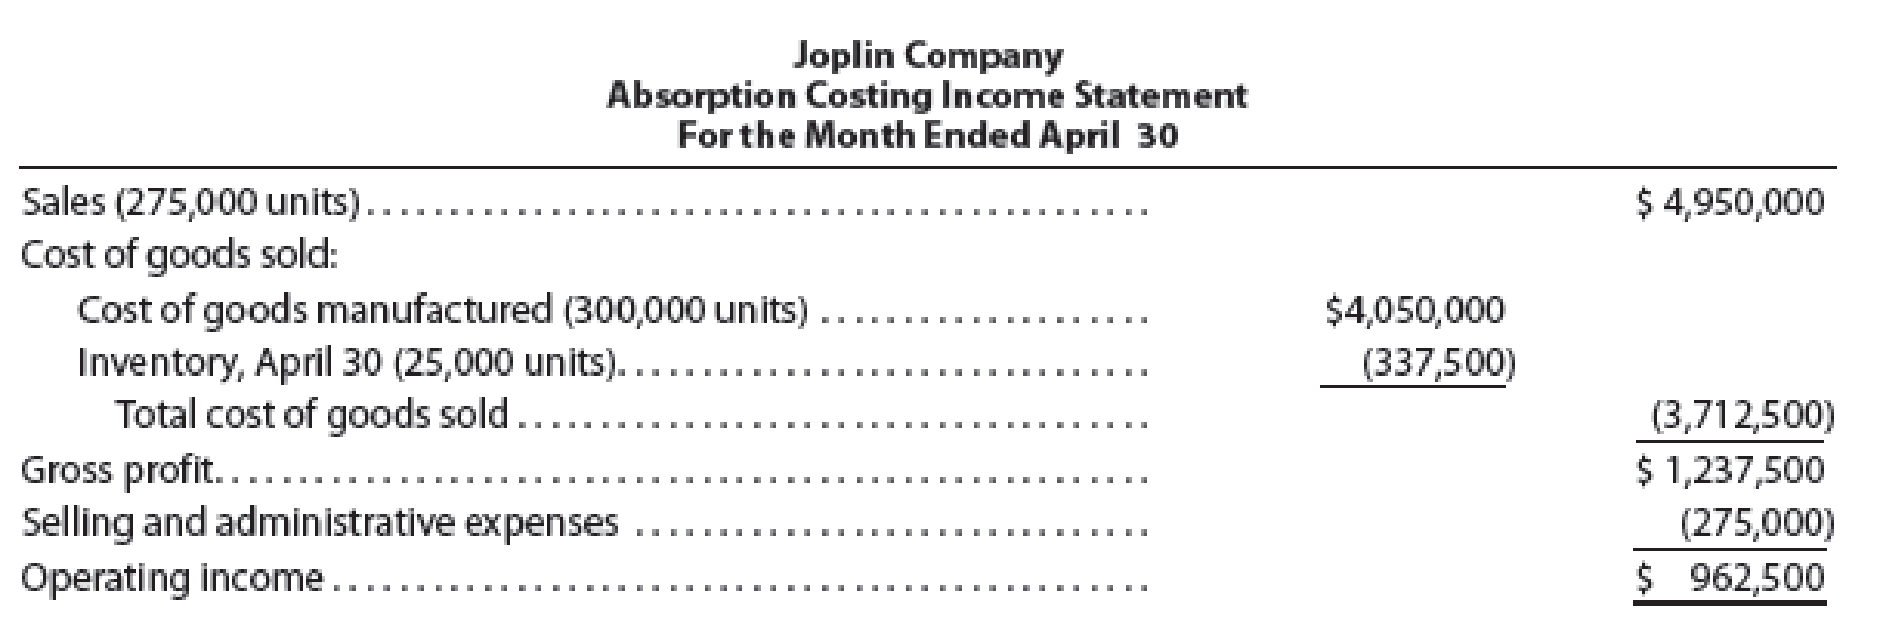 Chapter 7, Problem 5E, On April 30, the end of the first month of operations, Joplin Company prepared the following income